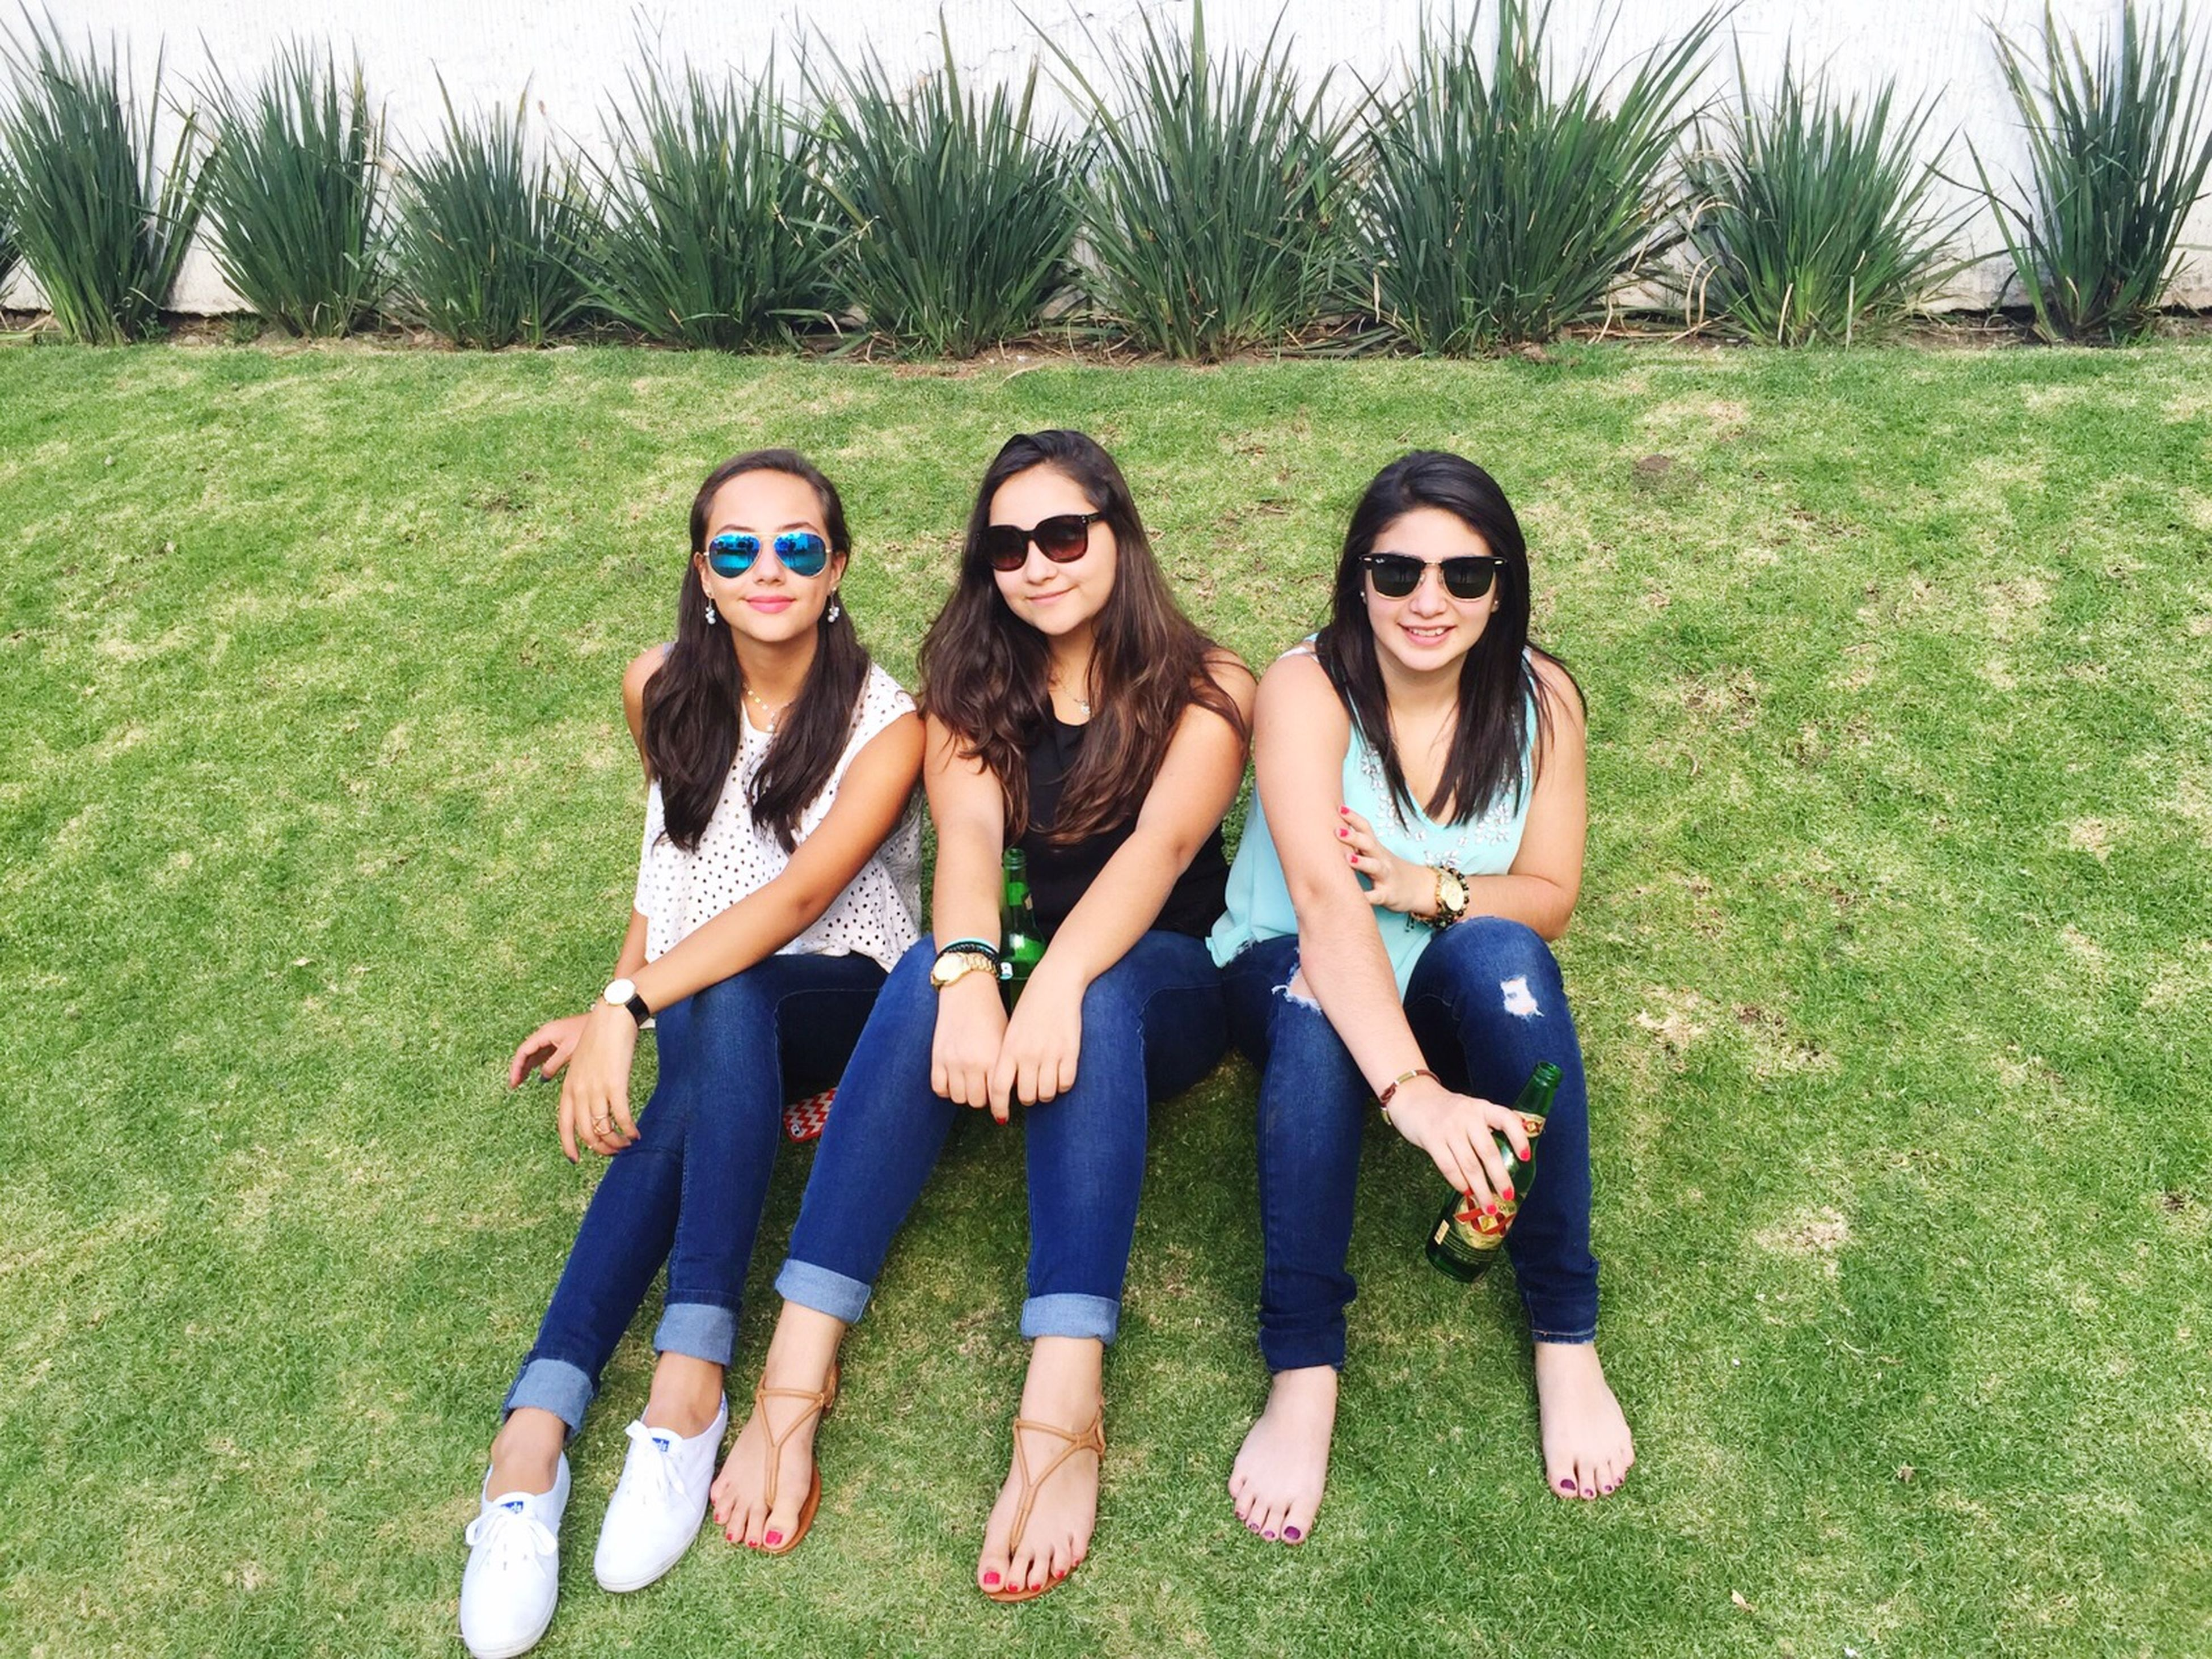 togetherness, lifestyles, leisure activity, bonding, young adult, person, casual clothing, grass, friendship, smiling, love, young women, happiness, front view, portrait, looking at camera, standing